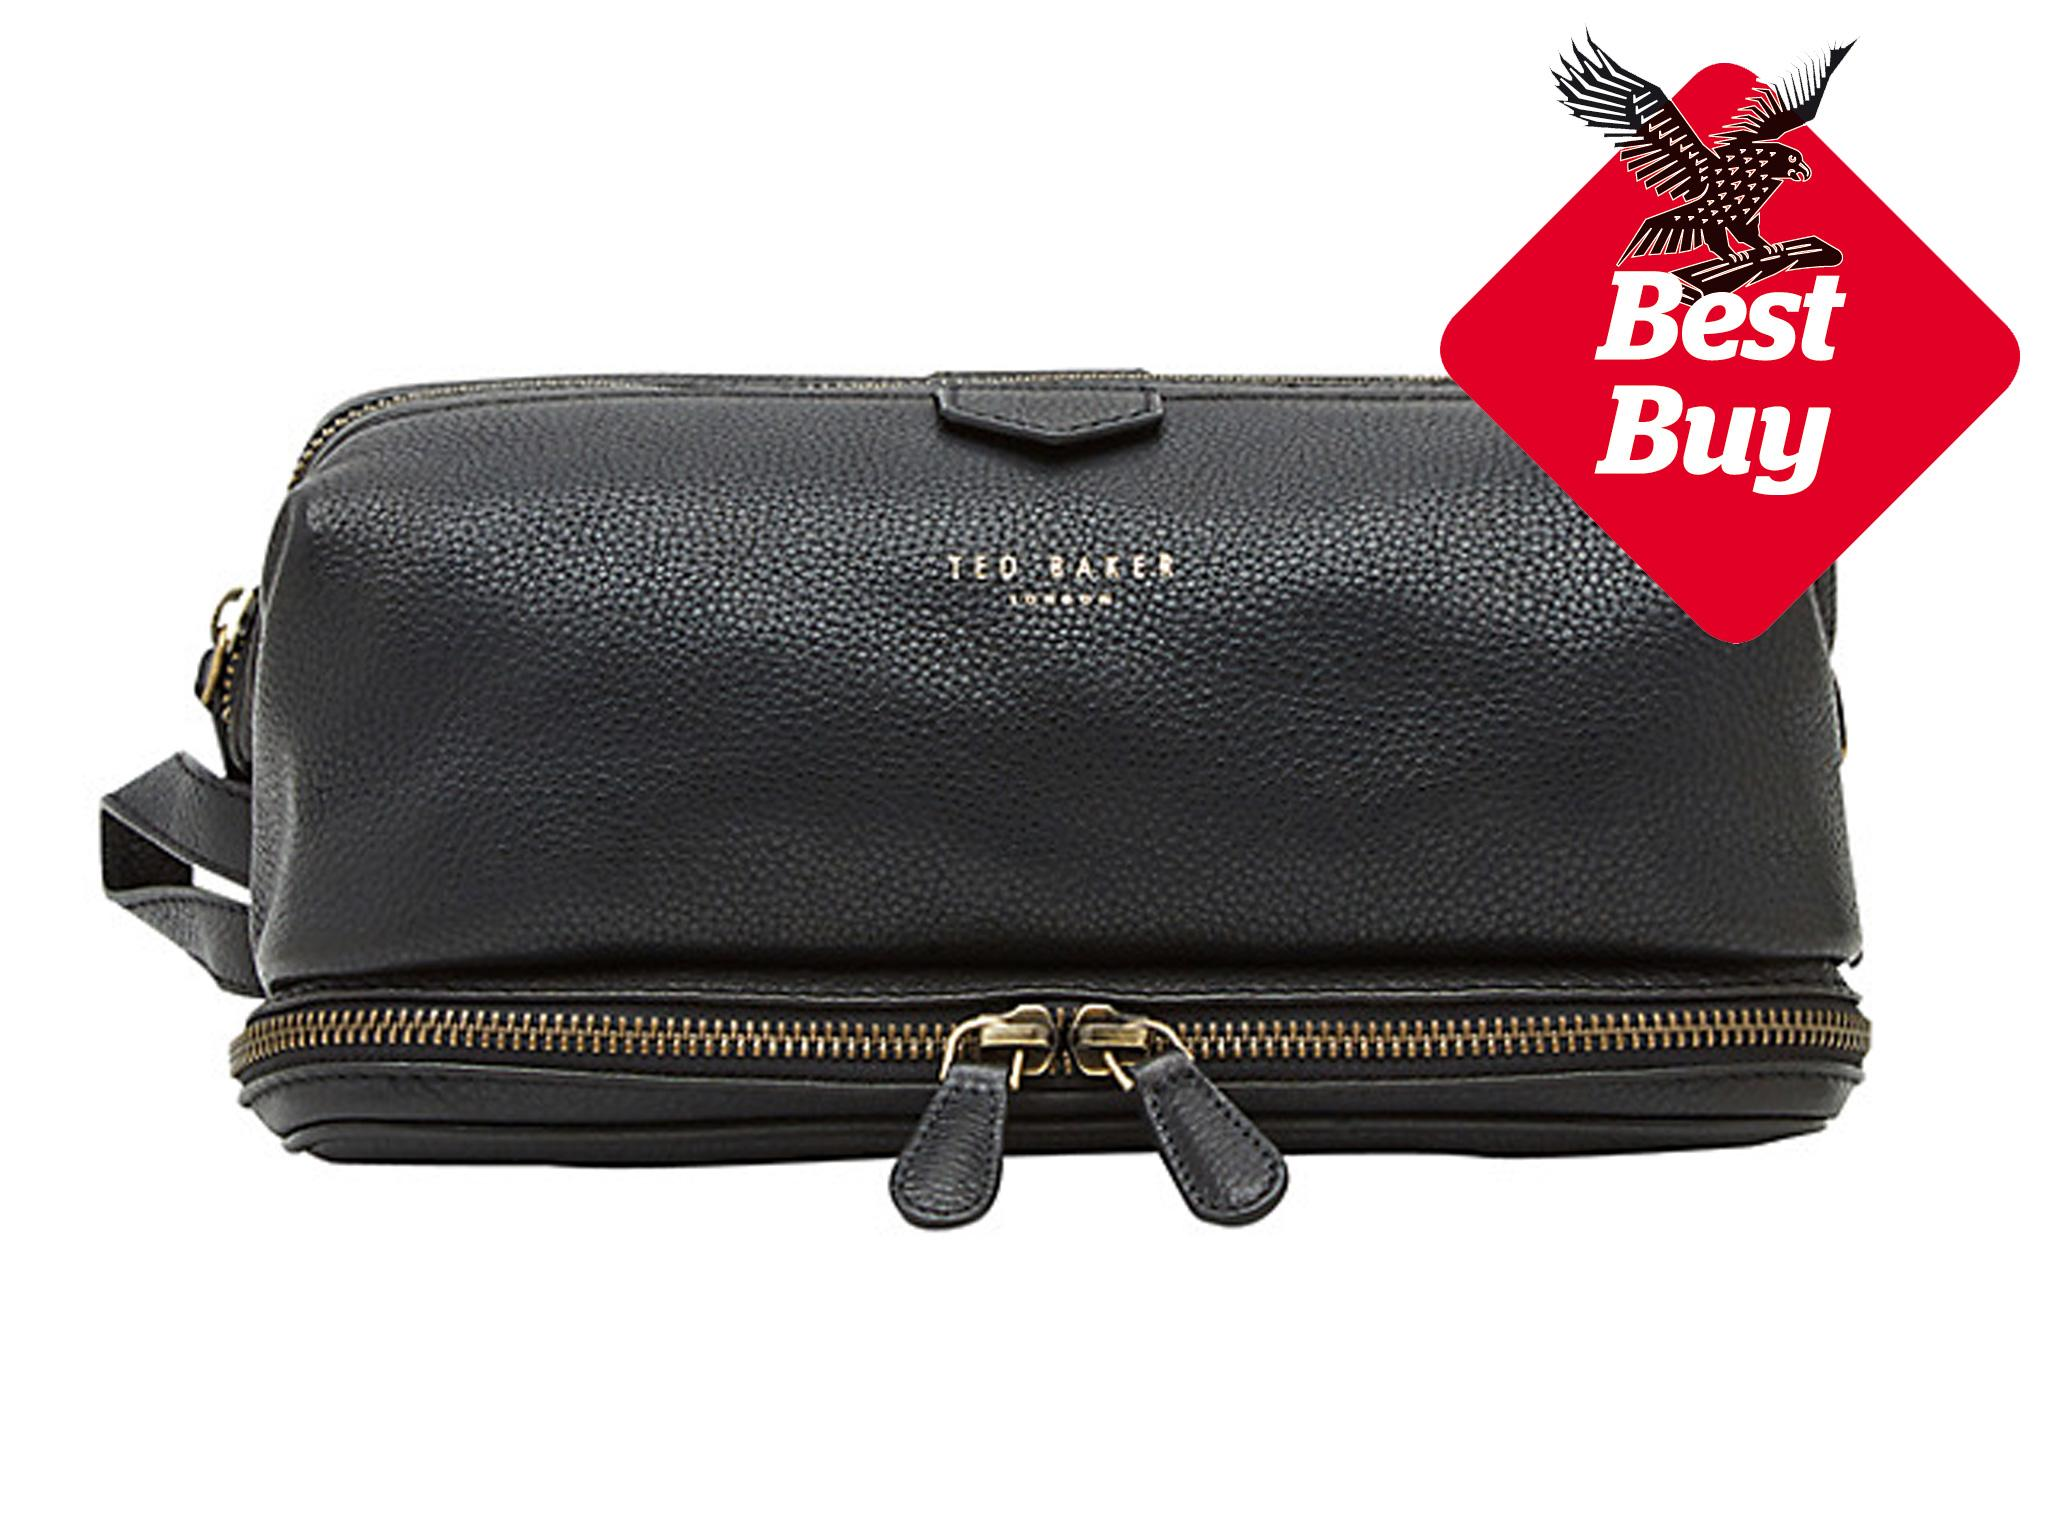 8e801ae7ae Ted Baker Lanclot Pebble Grain Leather Wash Bag  £65